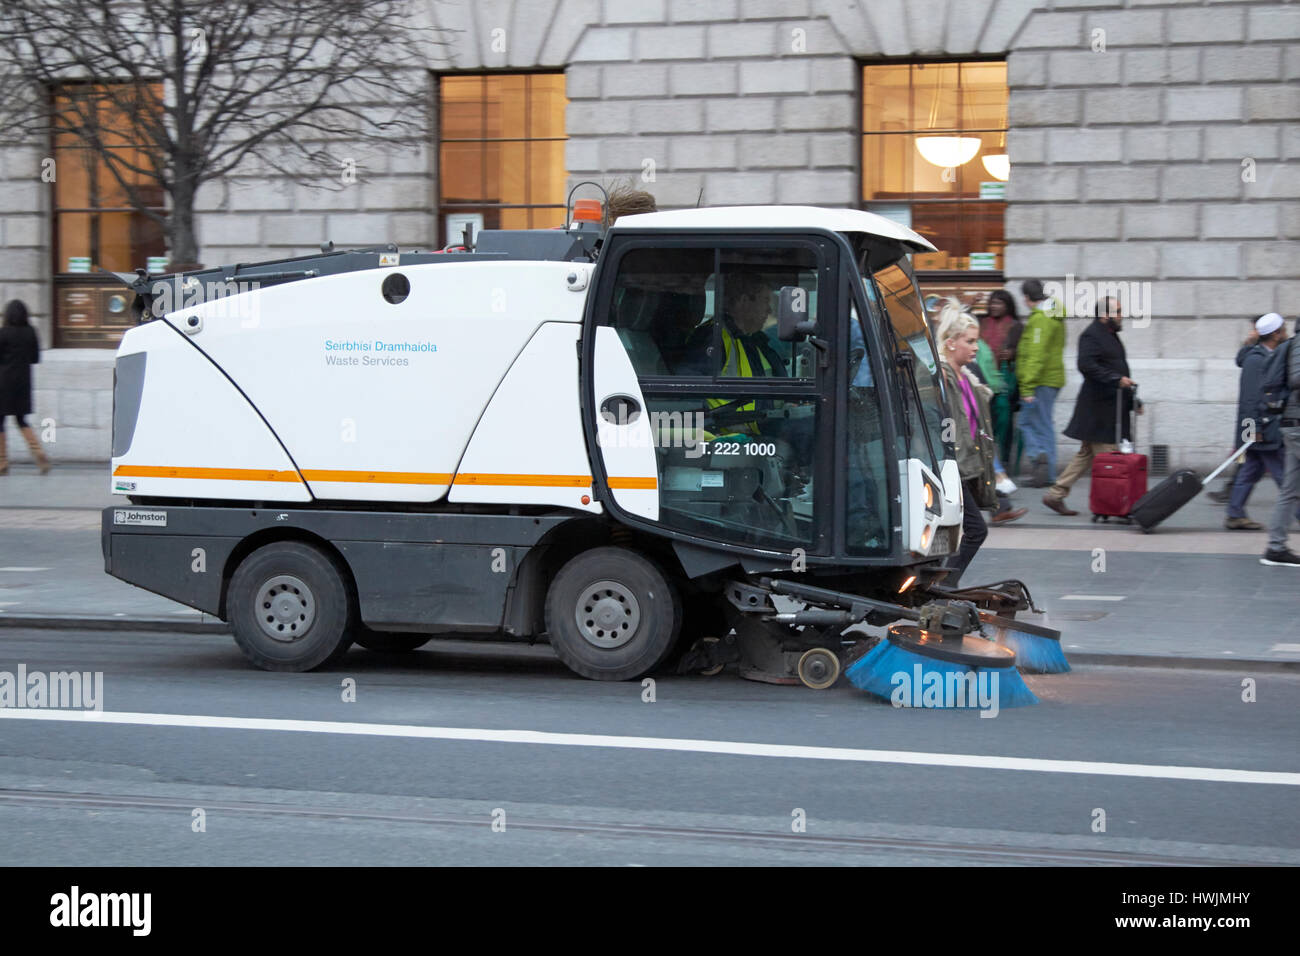 Dublin city waste services street sweeping vehicle on oconnell street Republic of Ireland - Stock Image